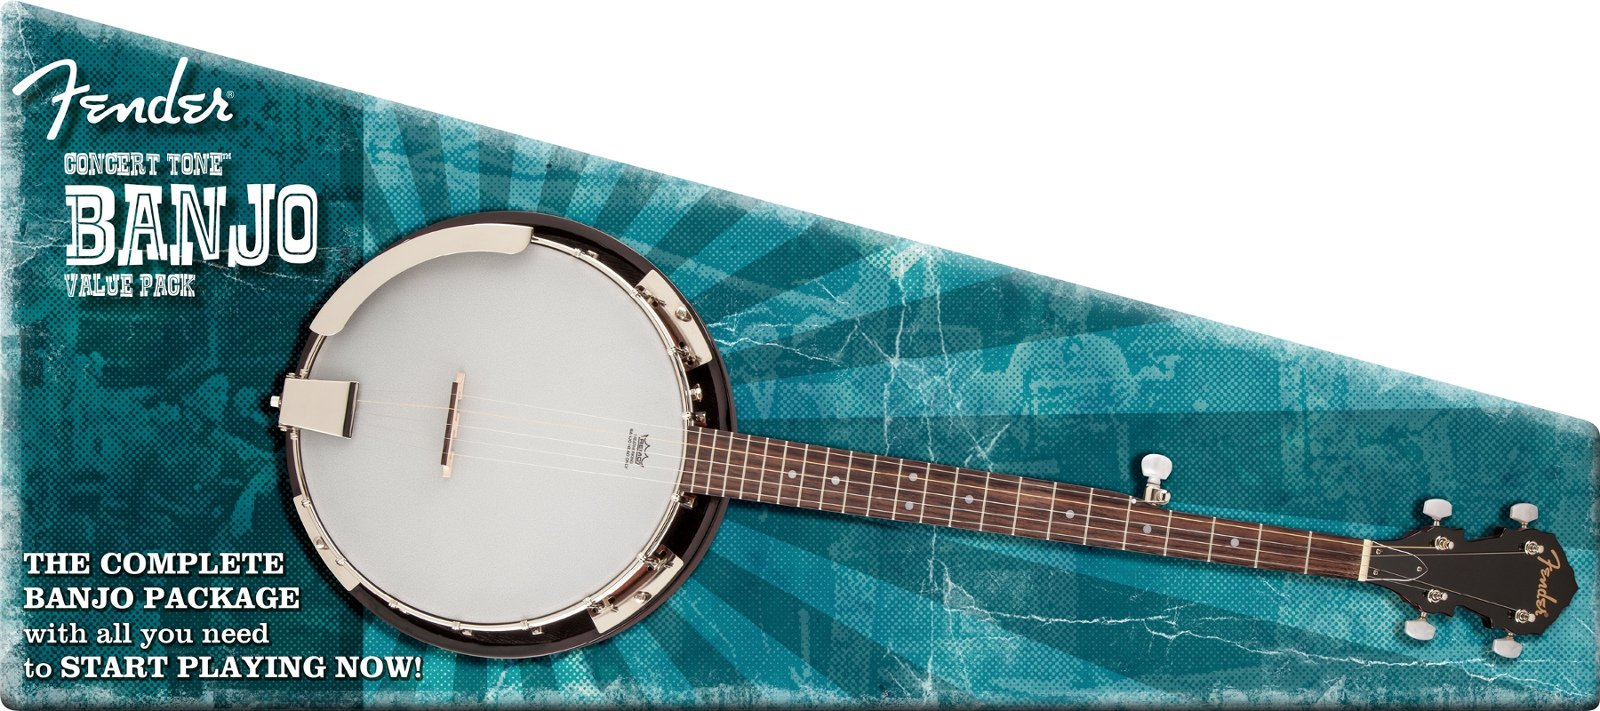 Five-String Banjo with Accessories